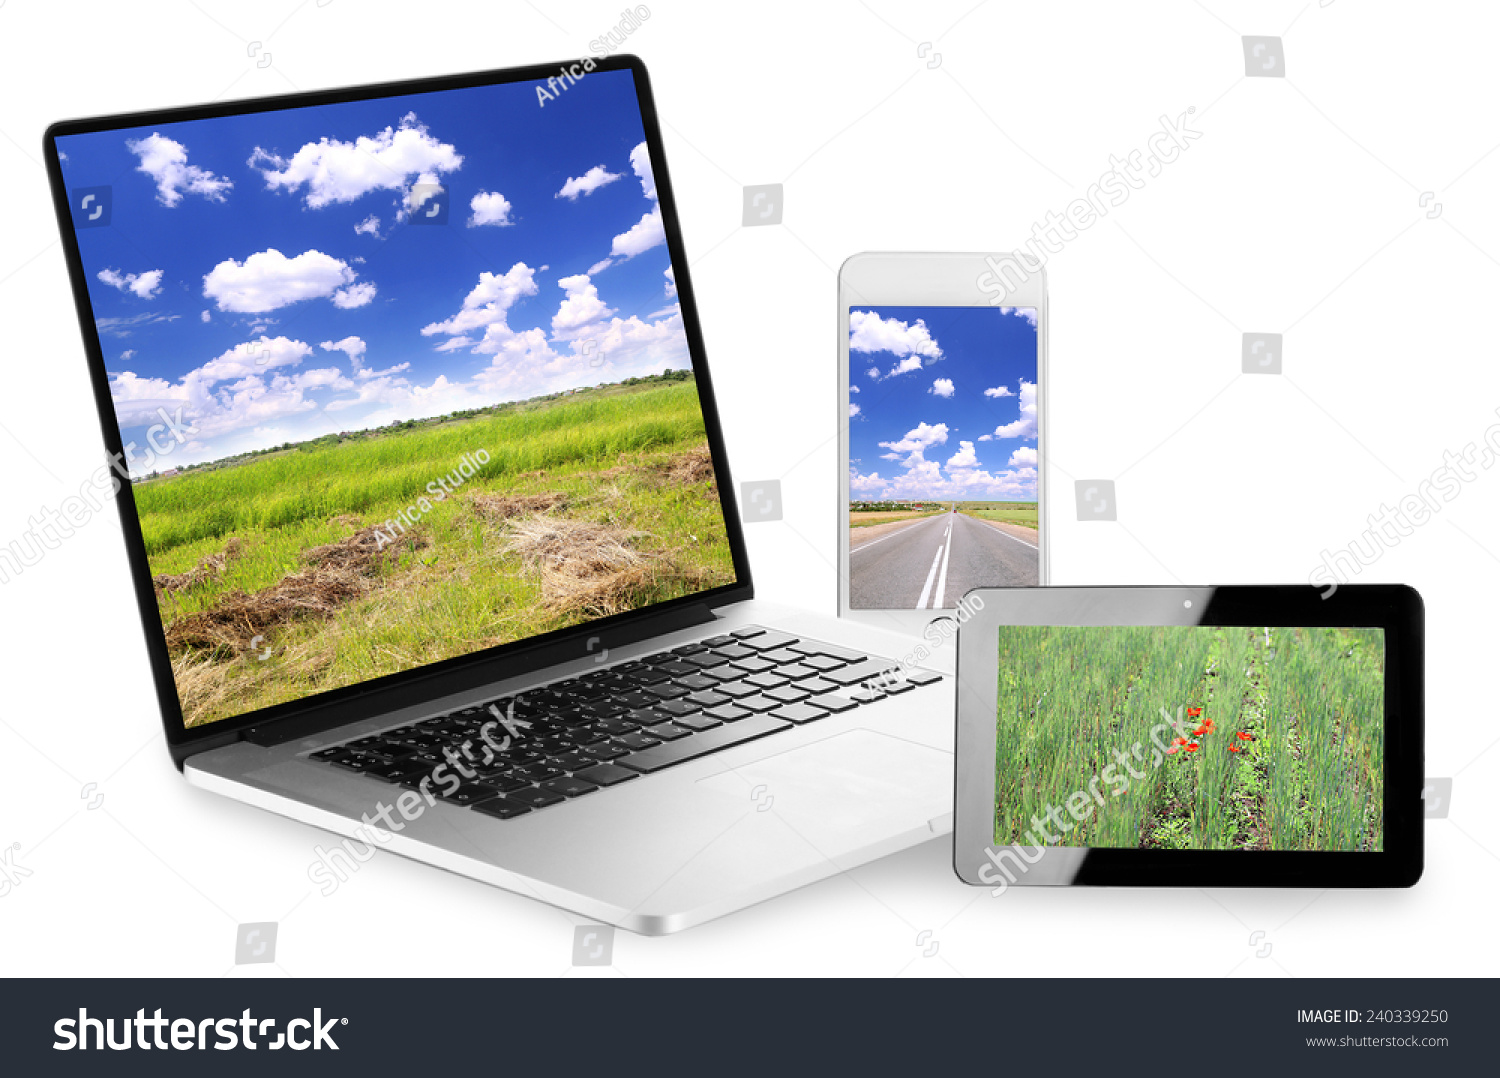 Laptop, tablet and phone with nature wallpaper on screens in collage isolated on white